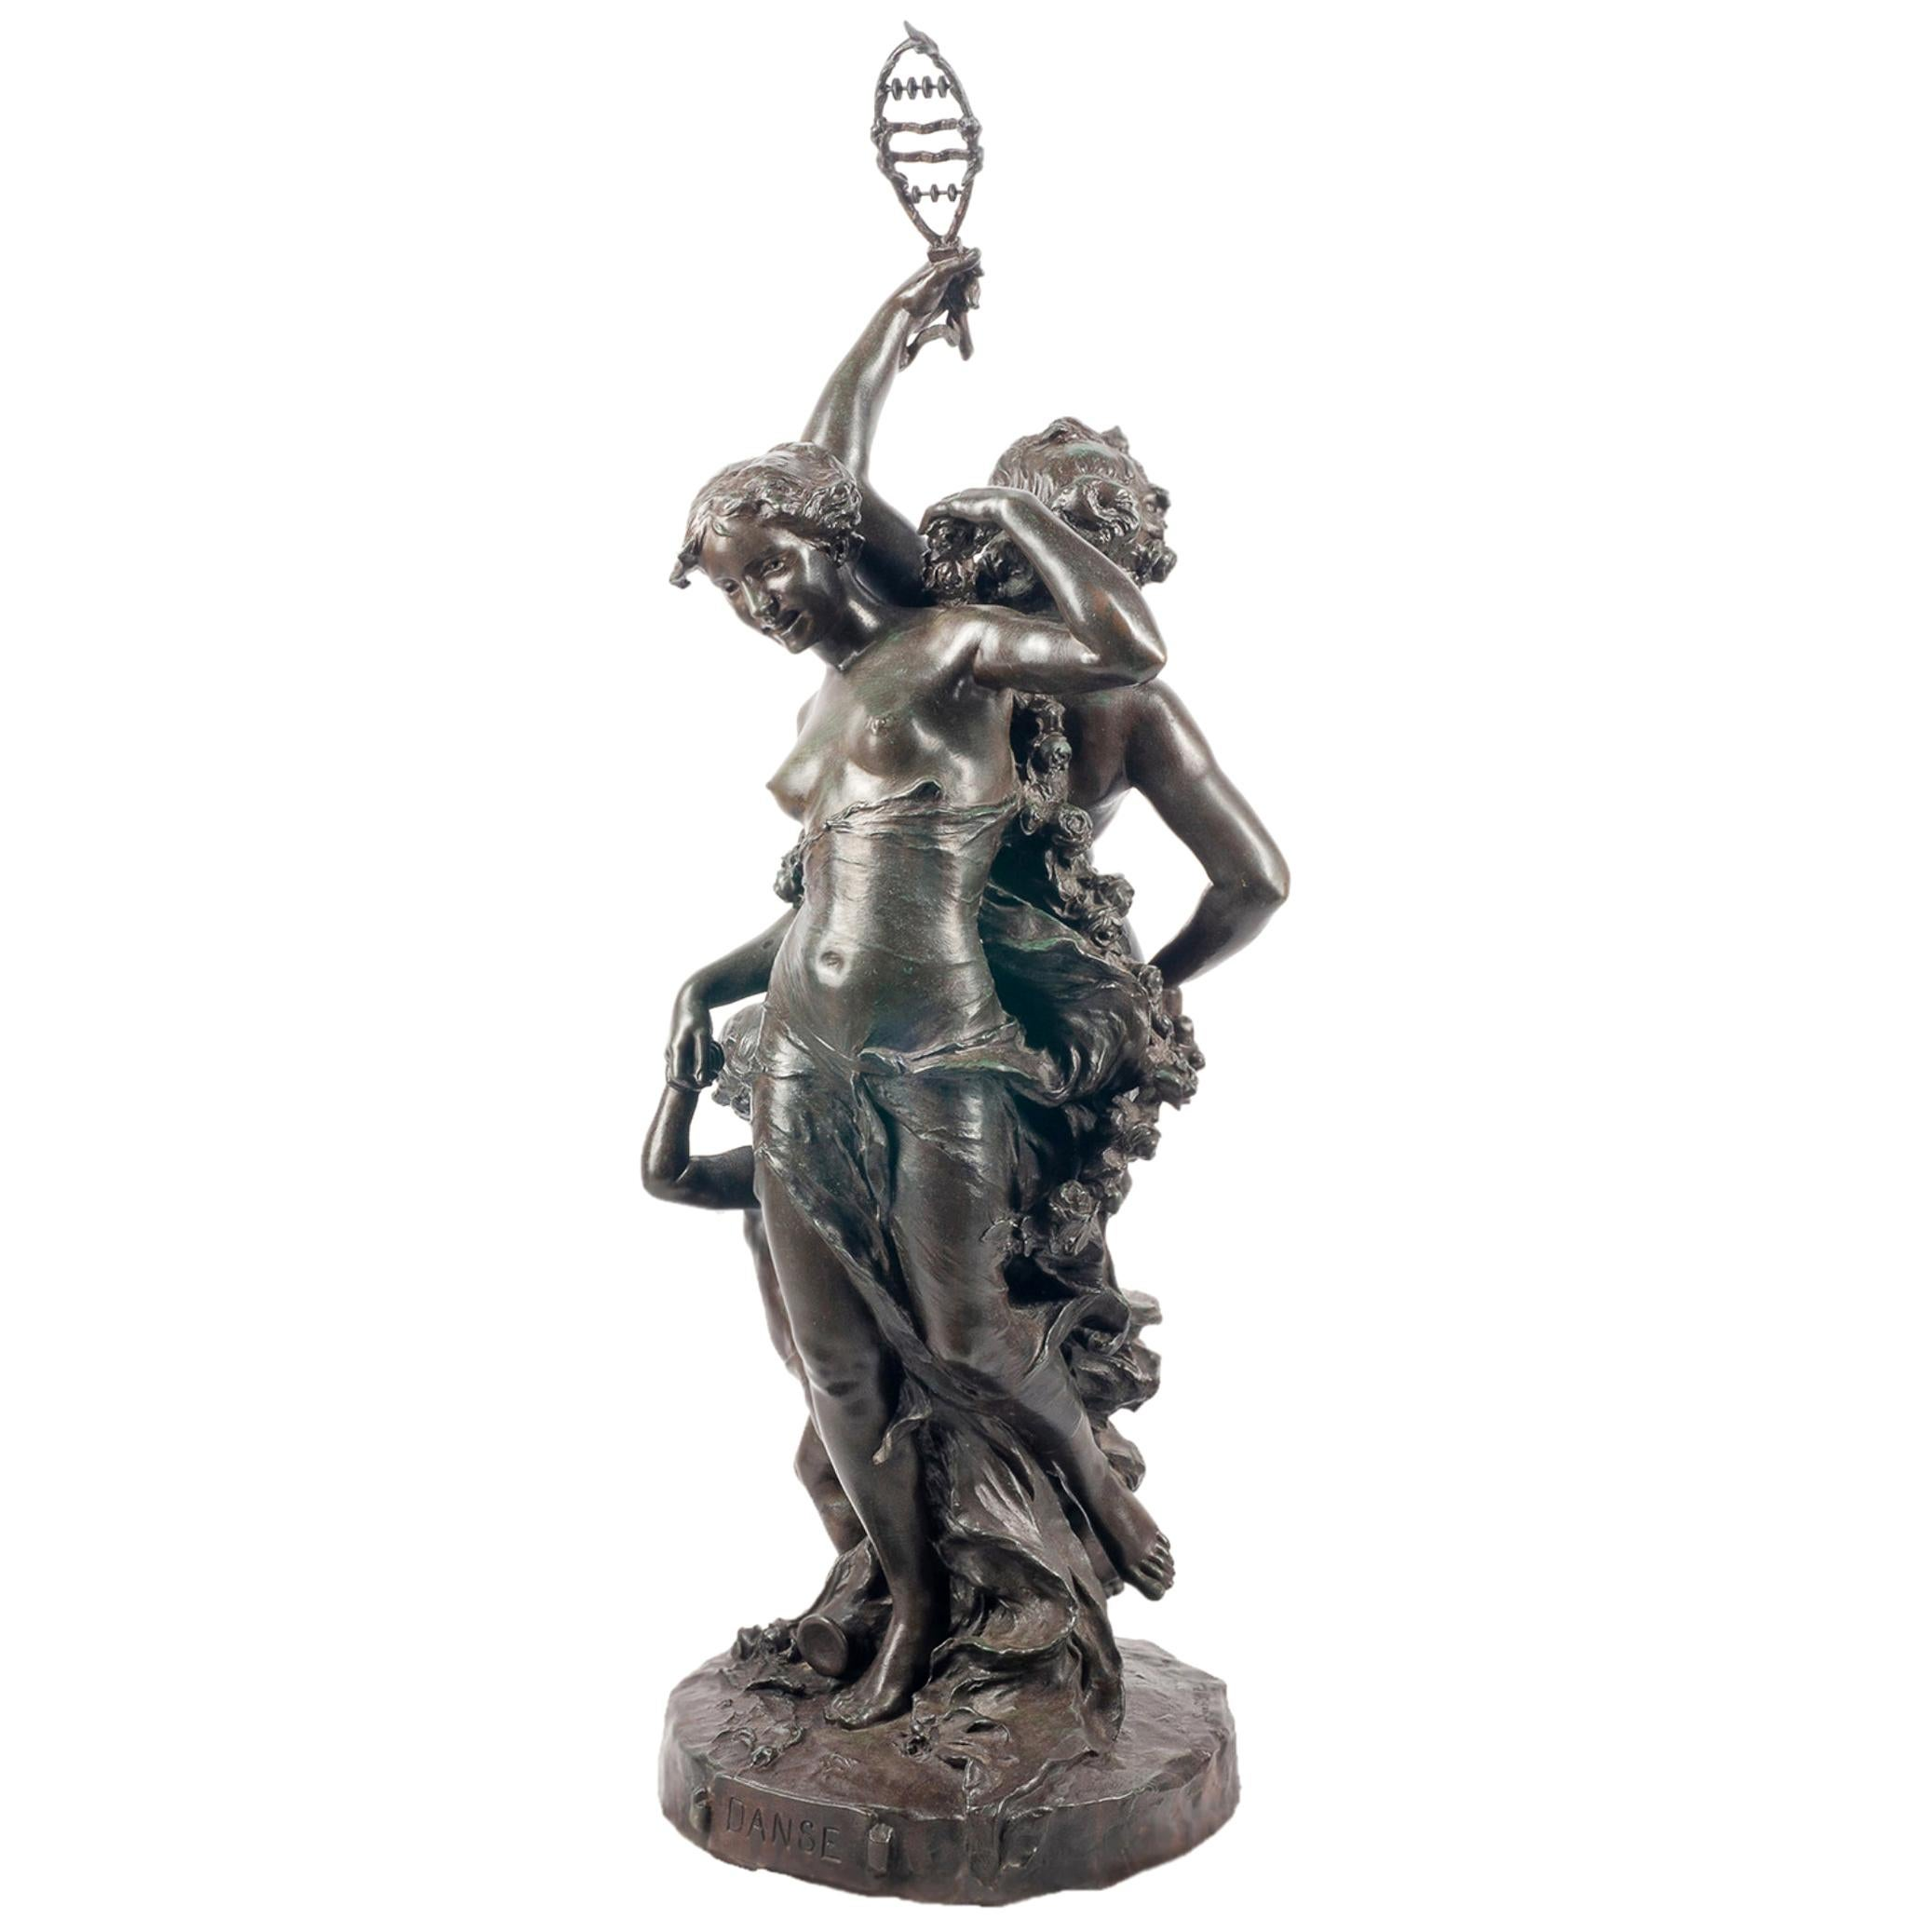 Classical C19th Bronze statue, depicting Music and Dance,  JEAN-BAPTISTE GERMAIN